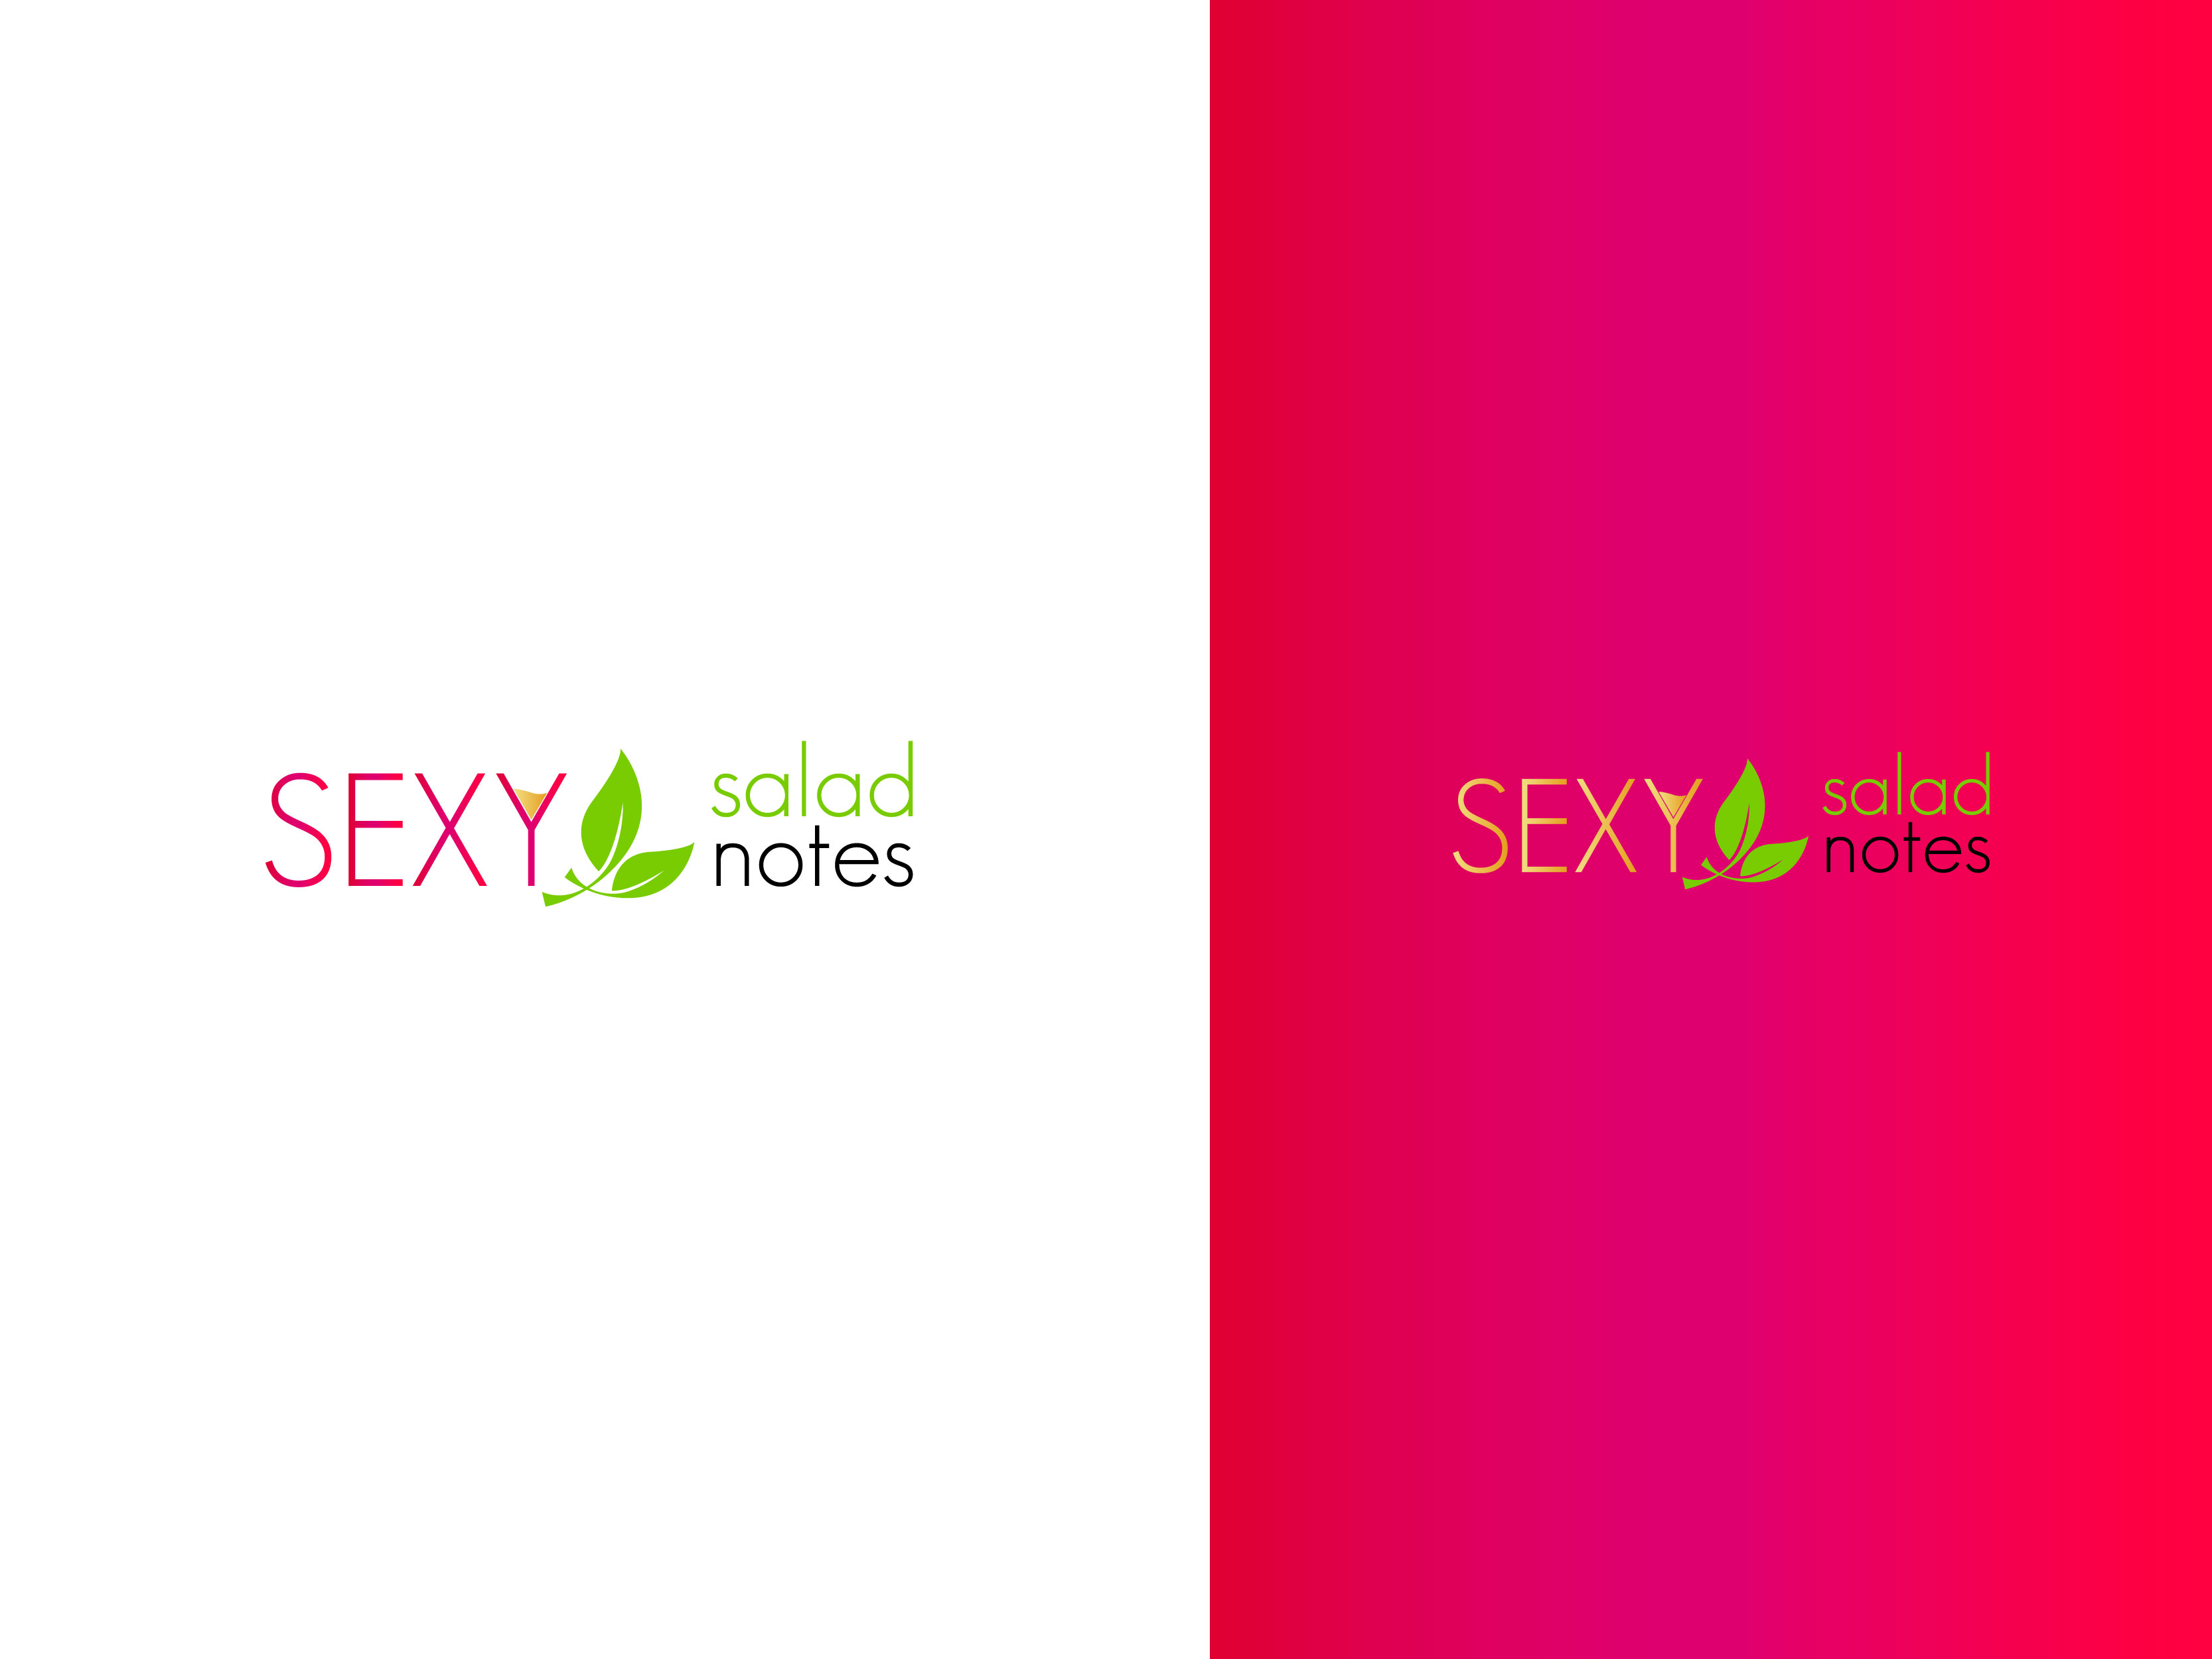 Logo Design by Osi Indra - Entry No. 32 in the Logo Design Contest Artistic Logo Design for Sexy Salad Inc..